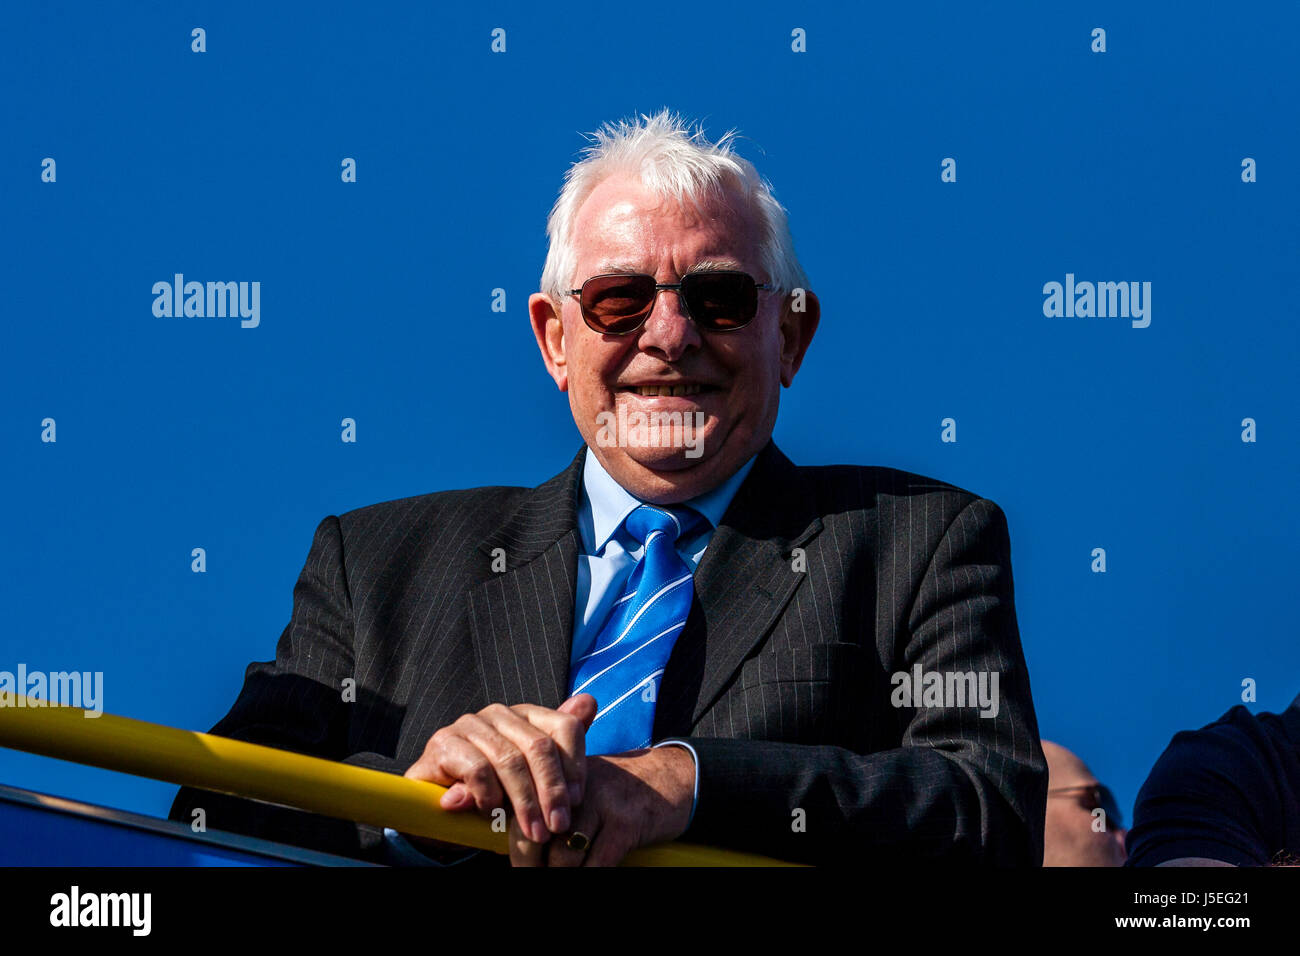 Alan Mullery Former Manager Of Brighton and Hove Albion FC On An Open Top Bus During The Clubs Seafront Promotion - Stock Image